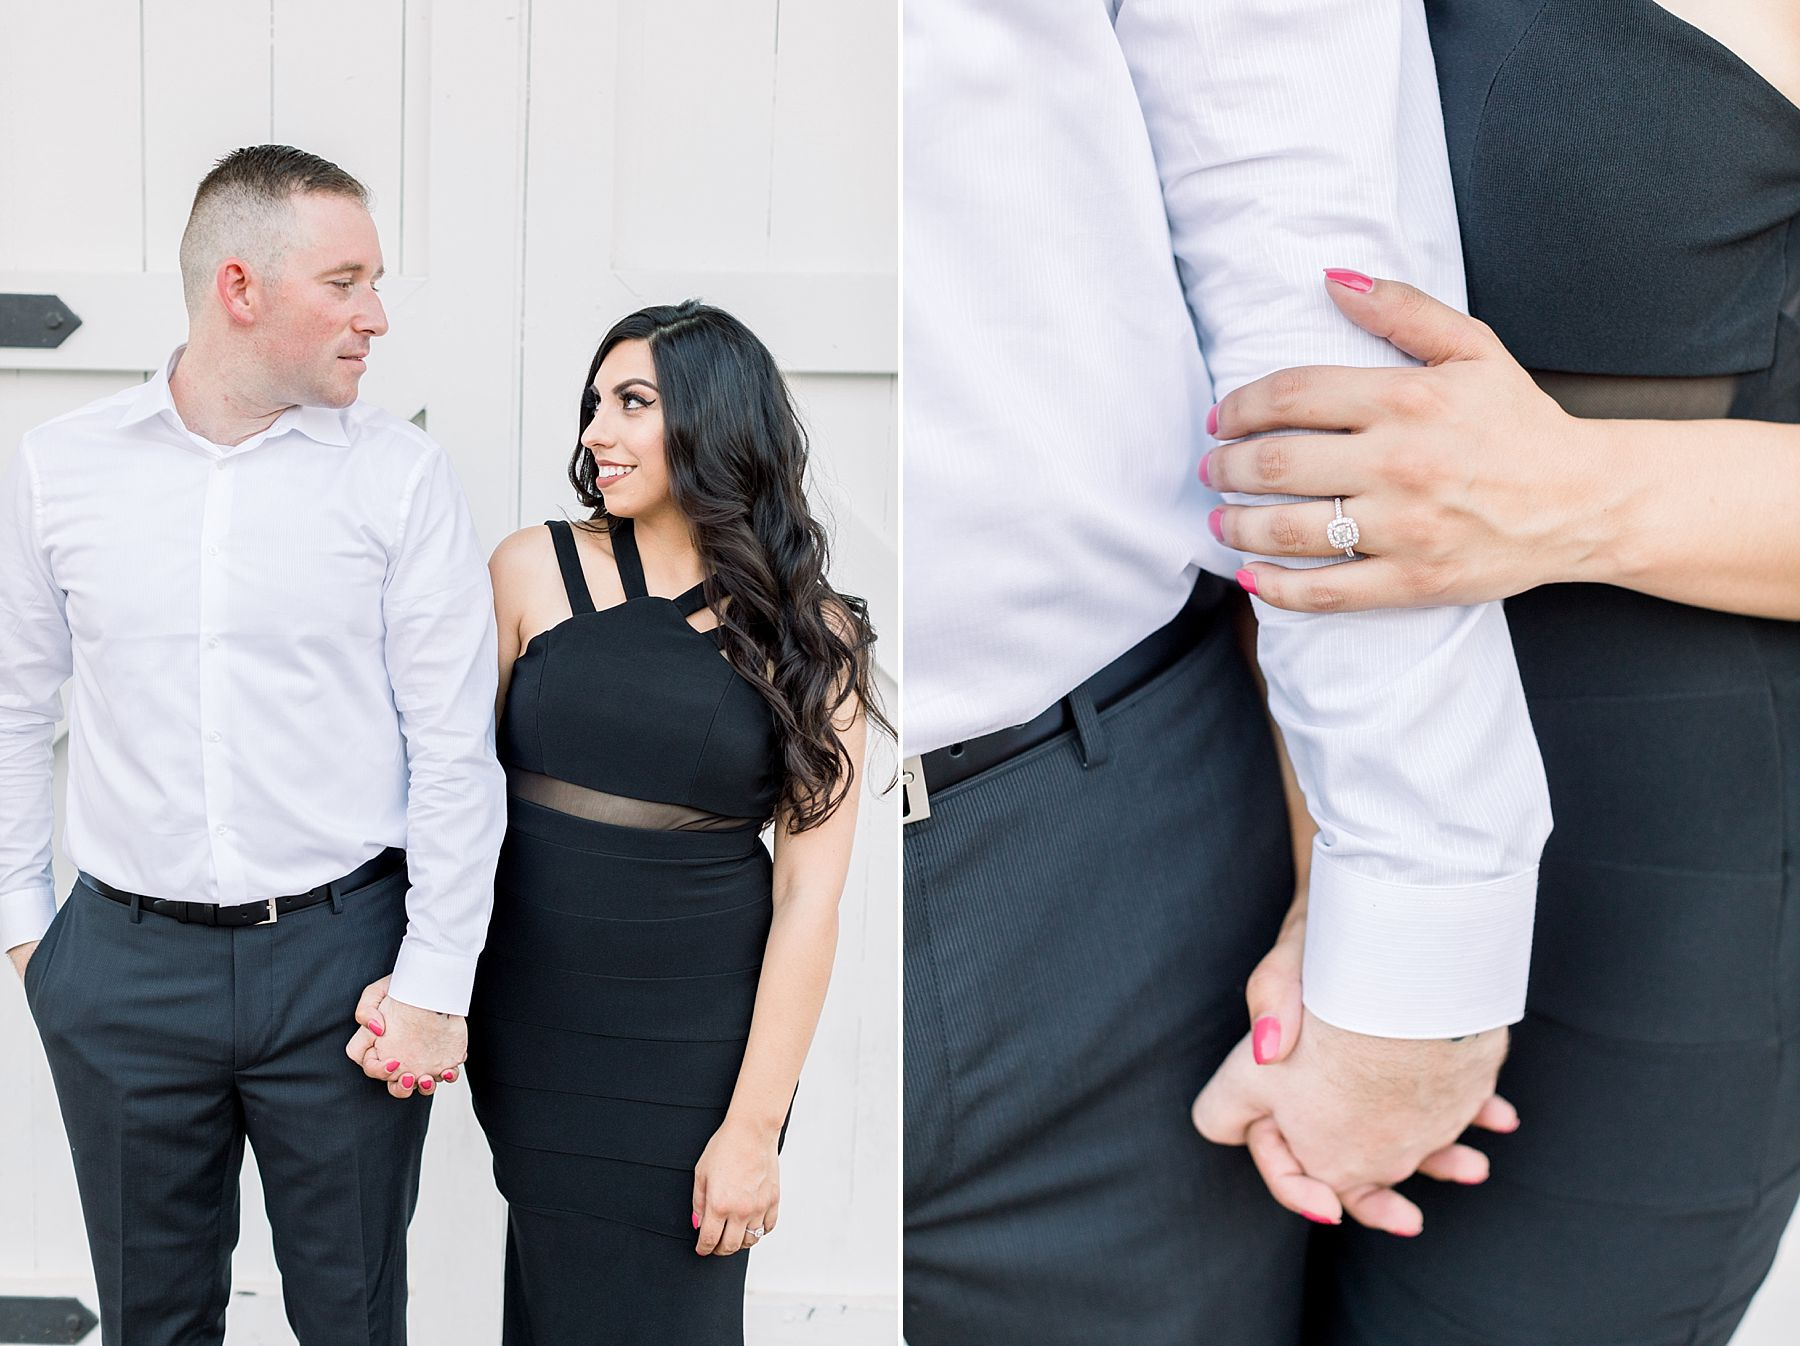 Old Sacramento Engagement Session - Downtown Sacramento Engagement Session - Black Tie Engagement Photos - Ashley Baumgartner - Sacramento Wedding Photographer_0006.jpg